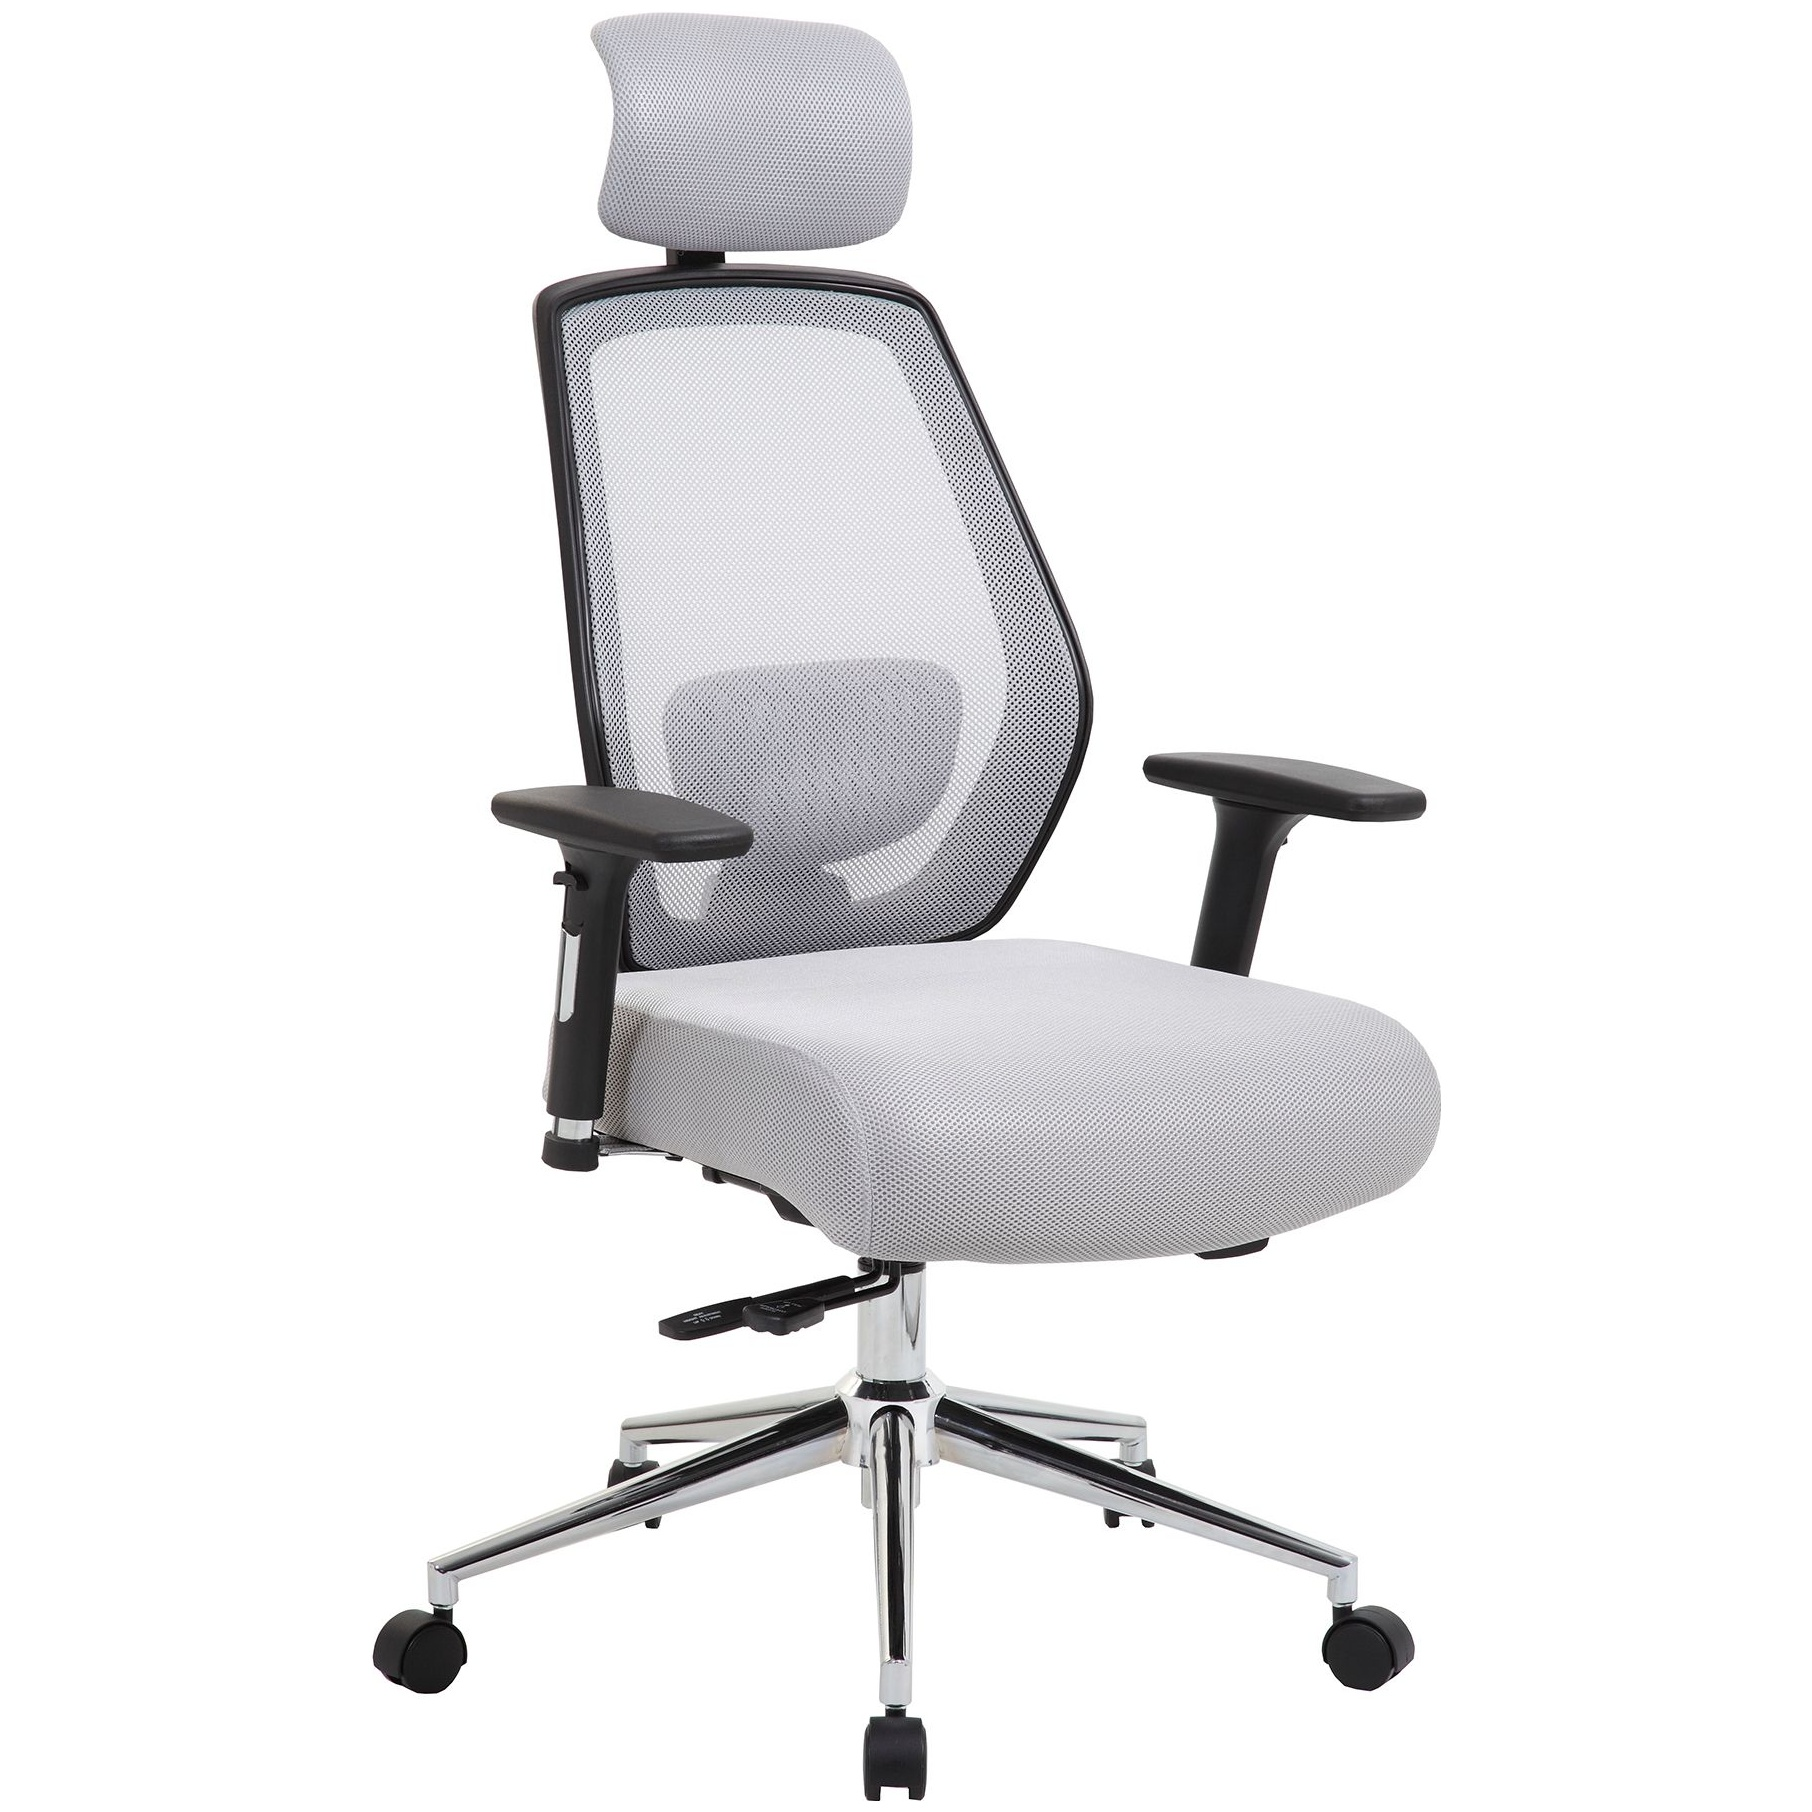 Ergo Task Ultimate Mesh Office Chair With Posture Sprung Seat